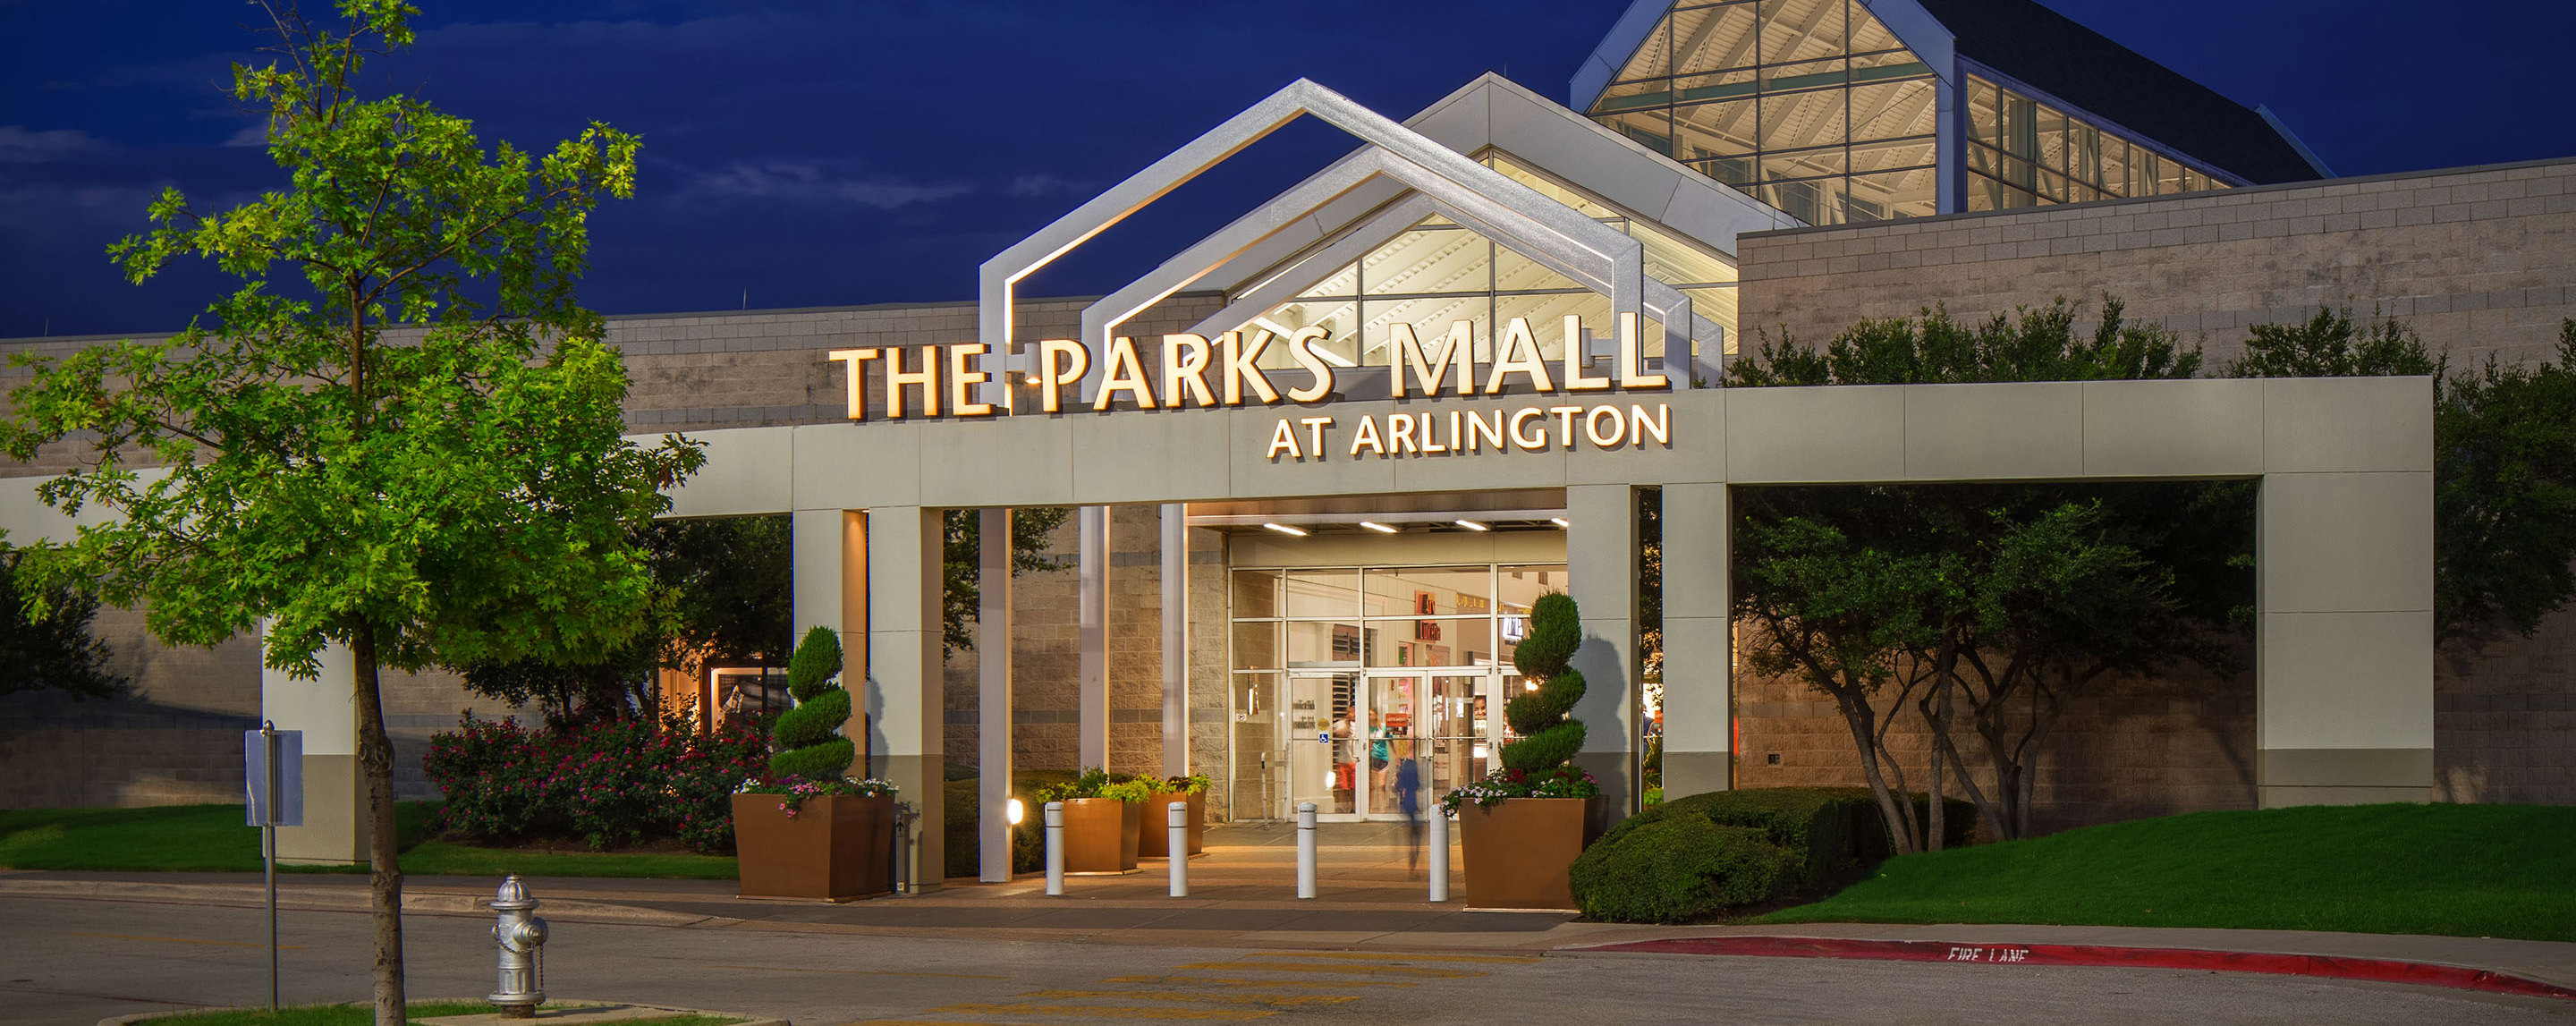 The entranceway to The Parks Mall at Arlington is brightly lit at dusk.